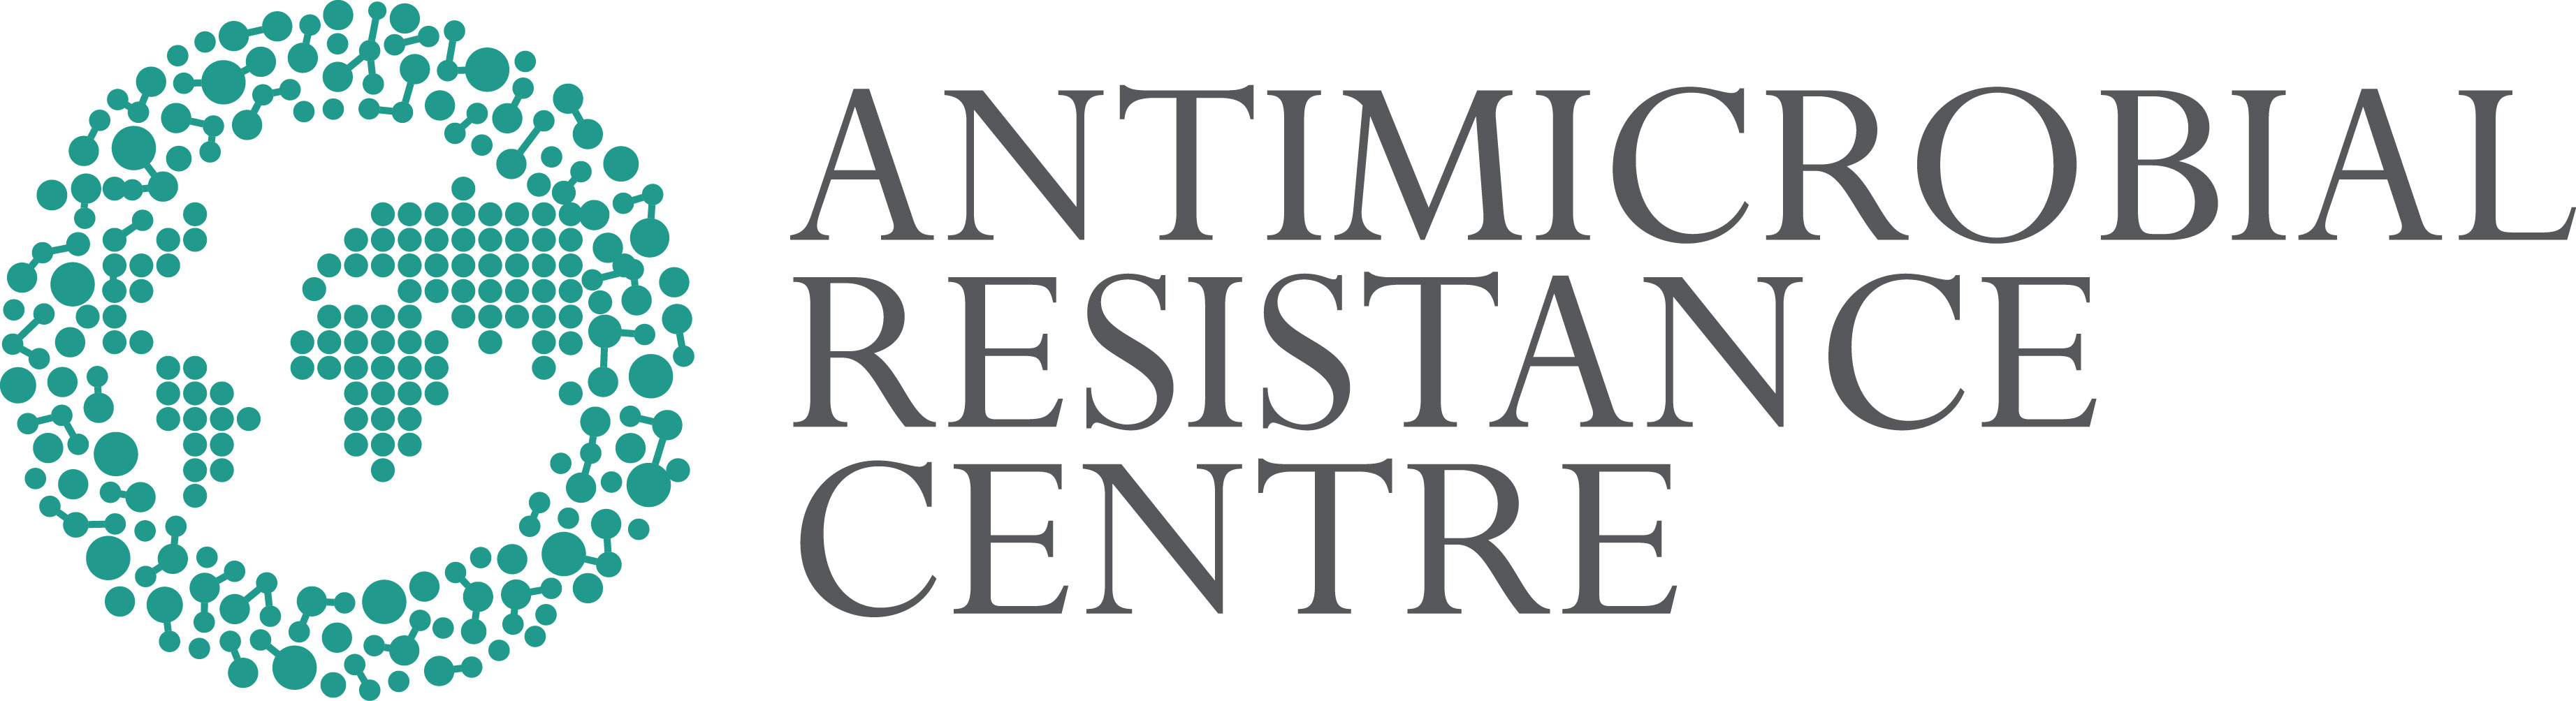 Anti-Microbial Resistance Centre Logo